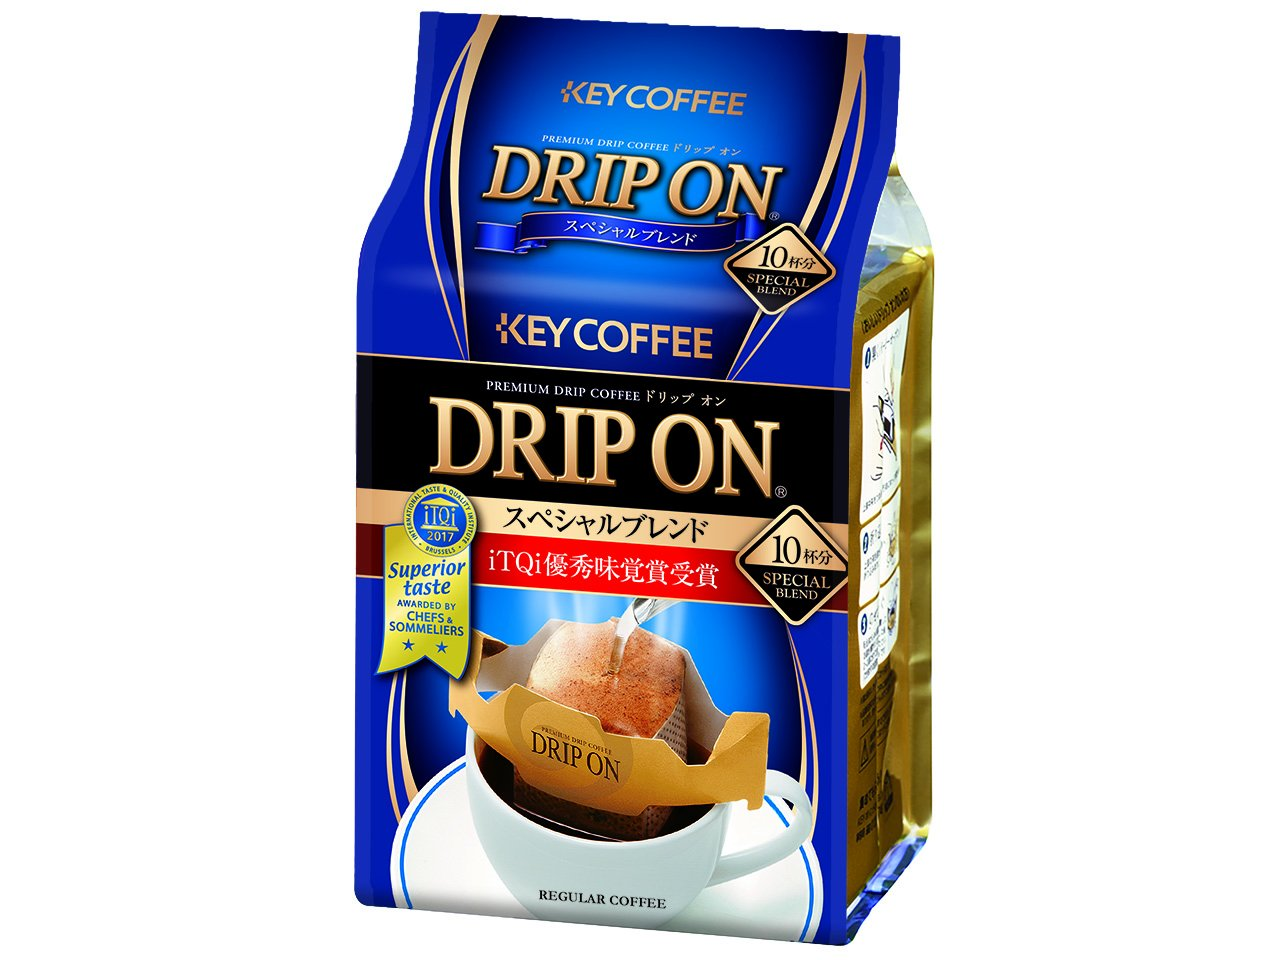 Monde Selection Award 2013 Key Coffee Special Blend Single Serve Hand Drip Coffee 10 Count